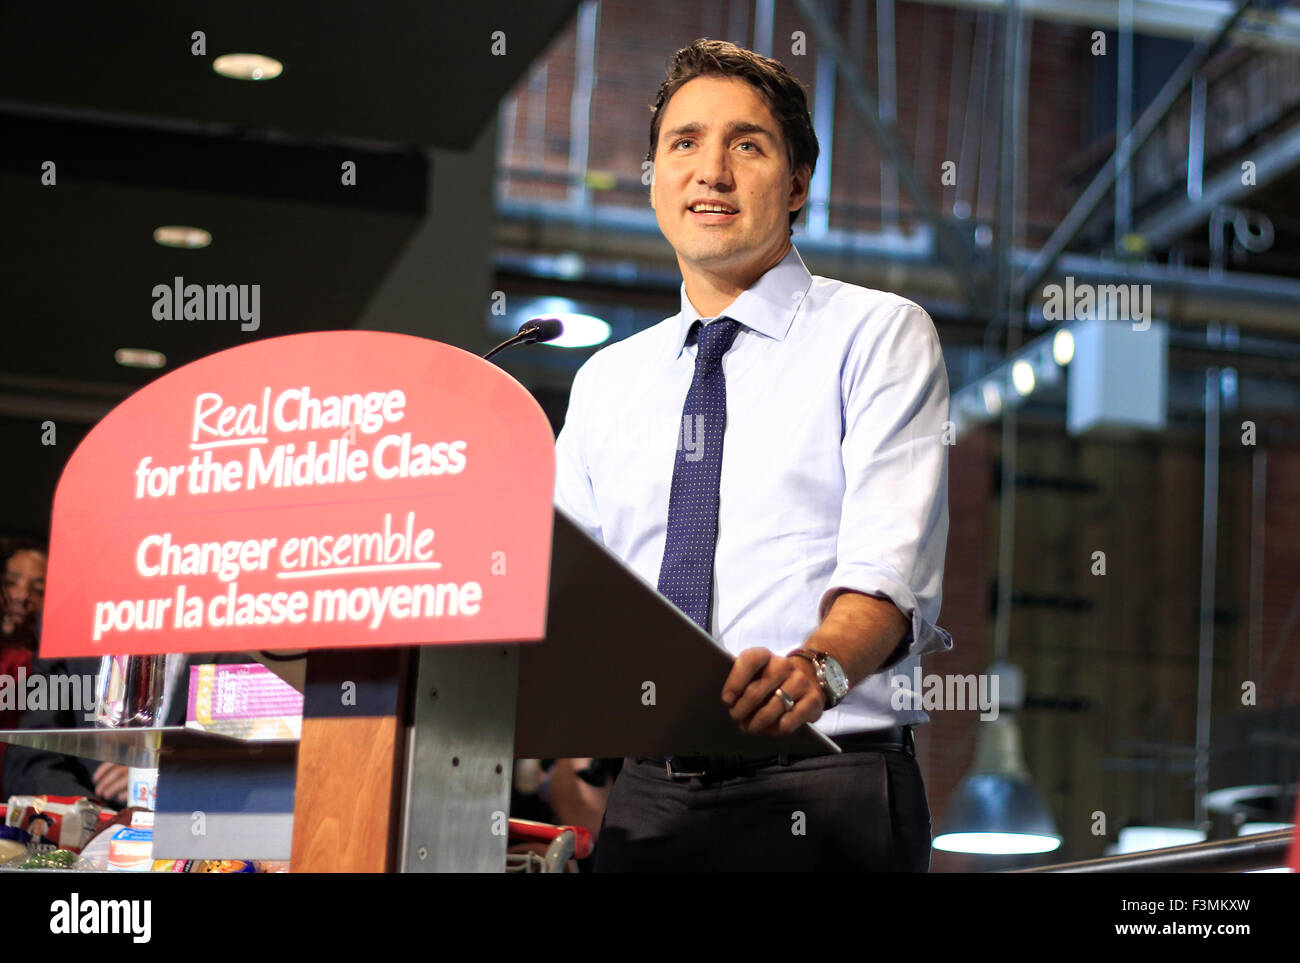 Toronto, Canada, 09th Oct, 2015. Justin Trudeau, Canadian Liberal Party Leader appearing at campaign event in Longo - Stock Image